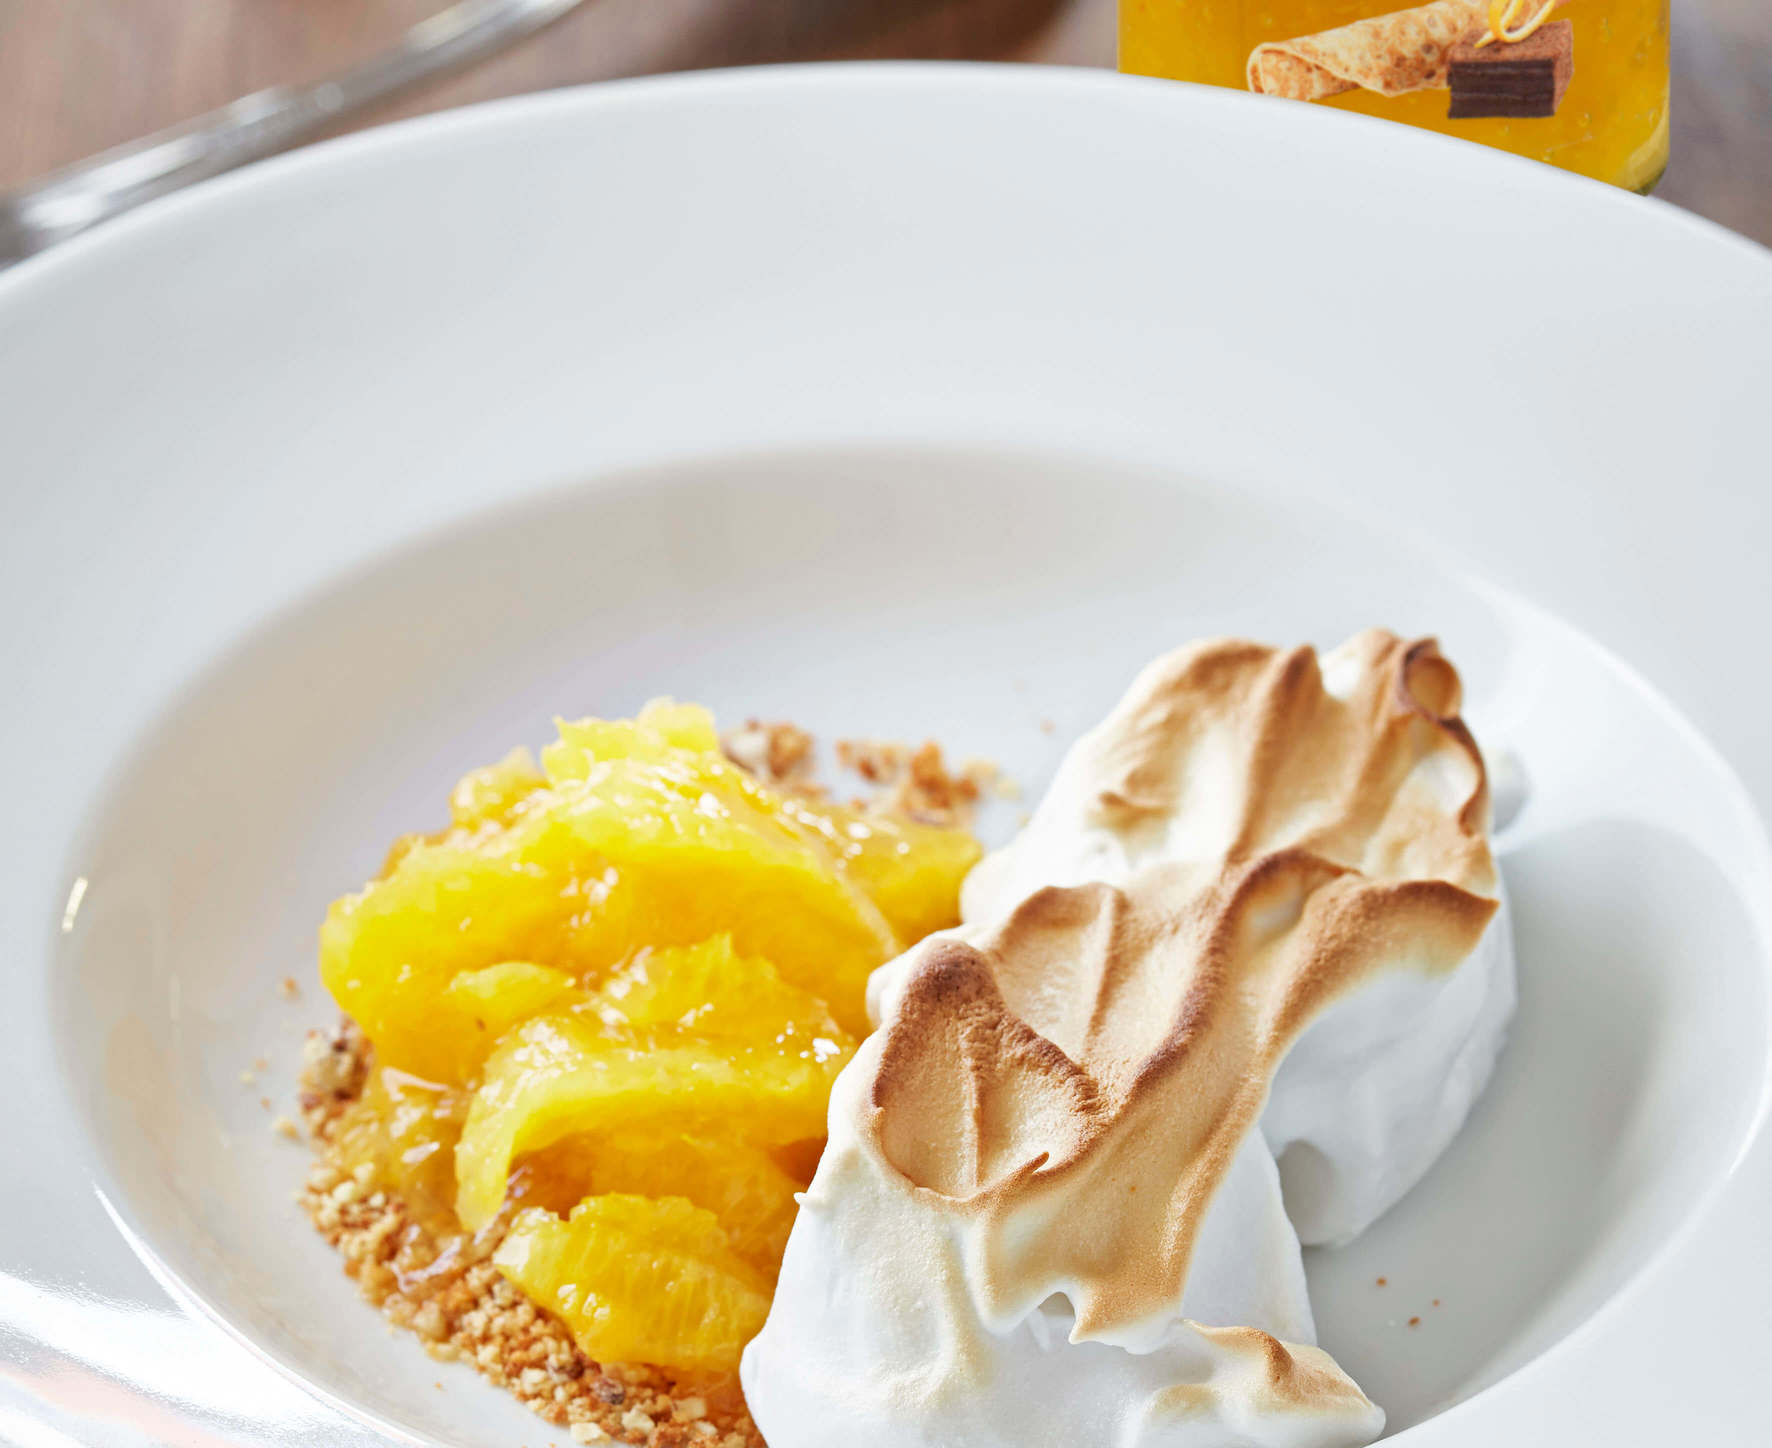 Orange Fruit Salad with Meringue